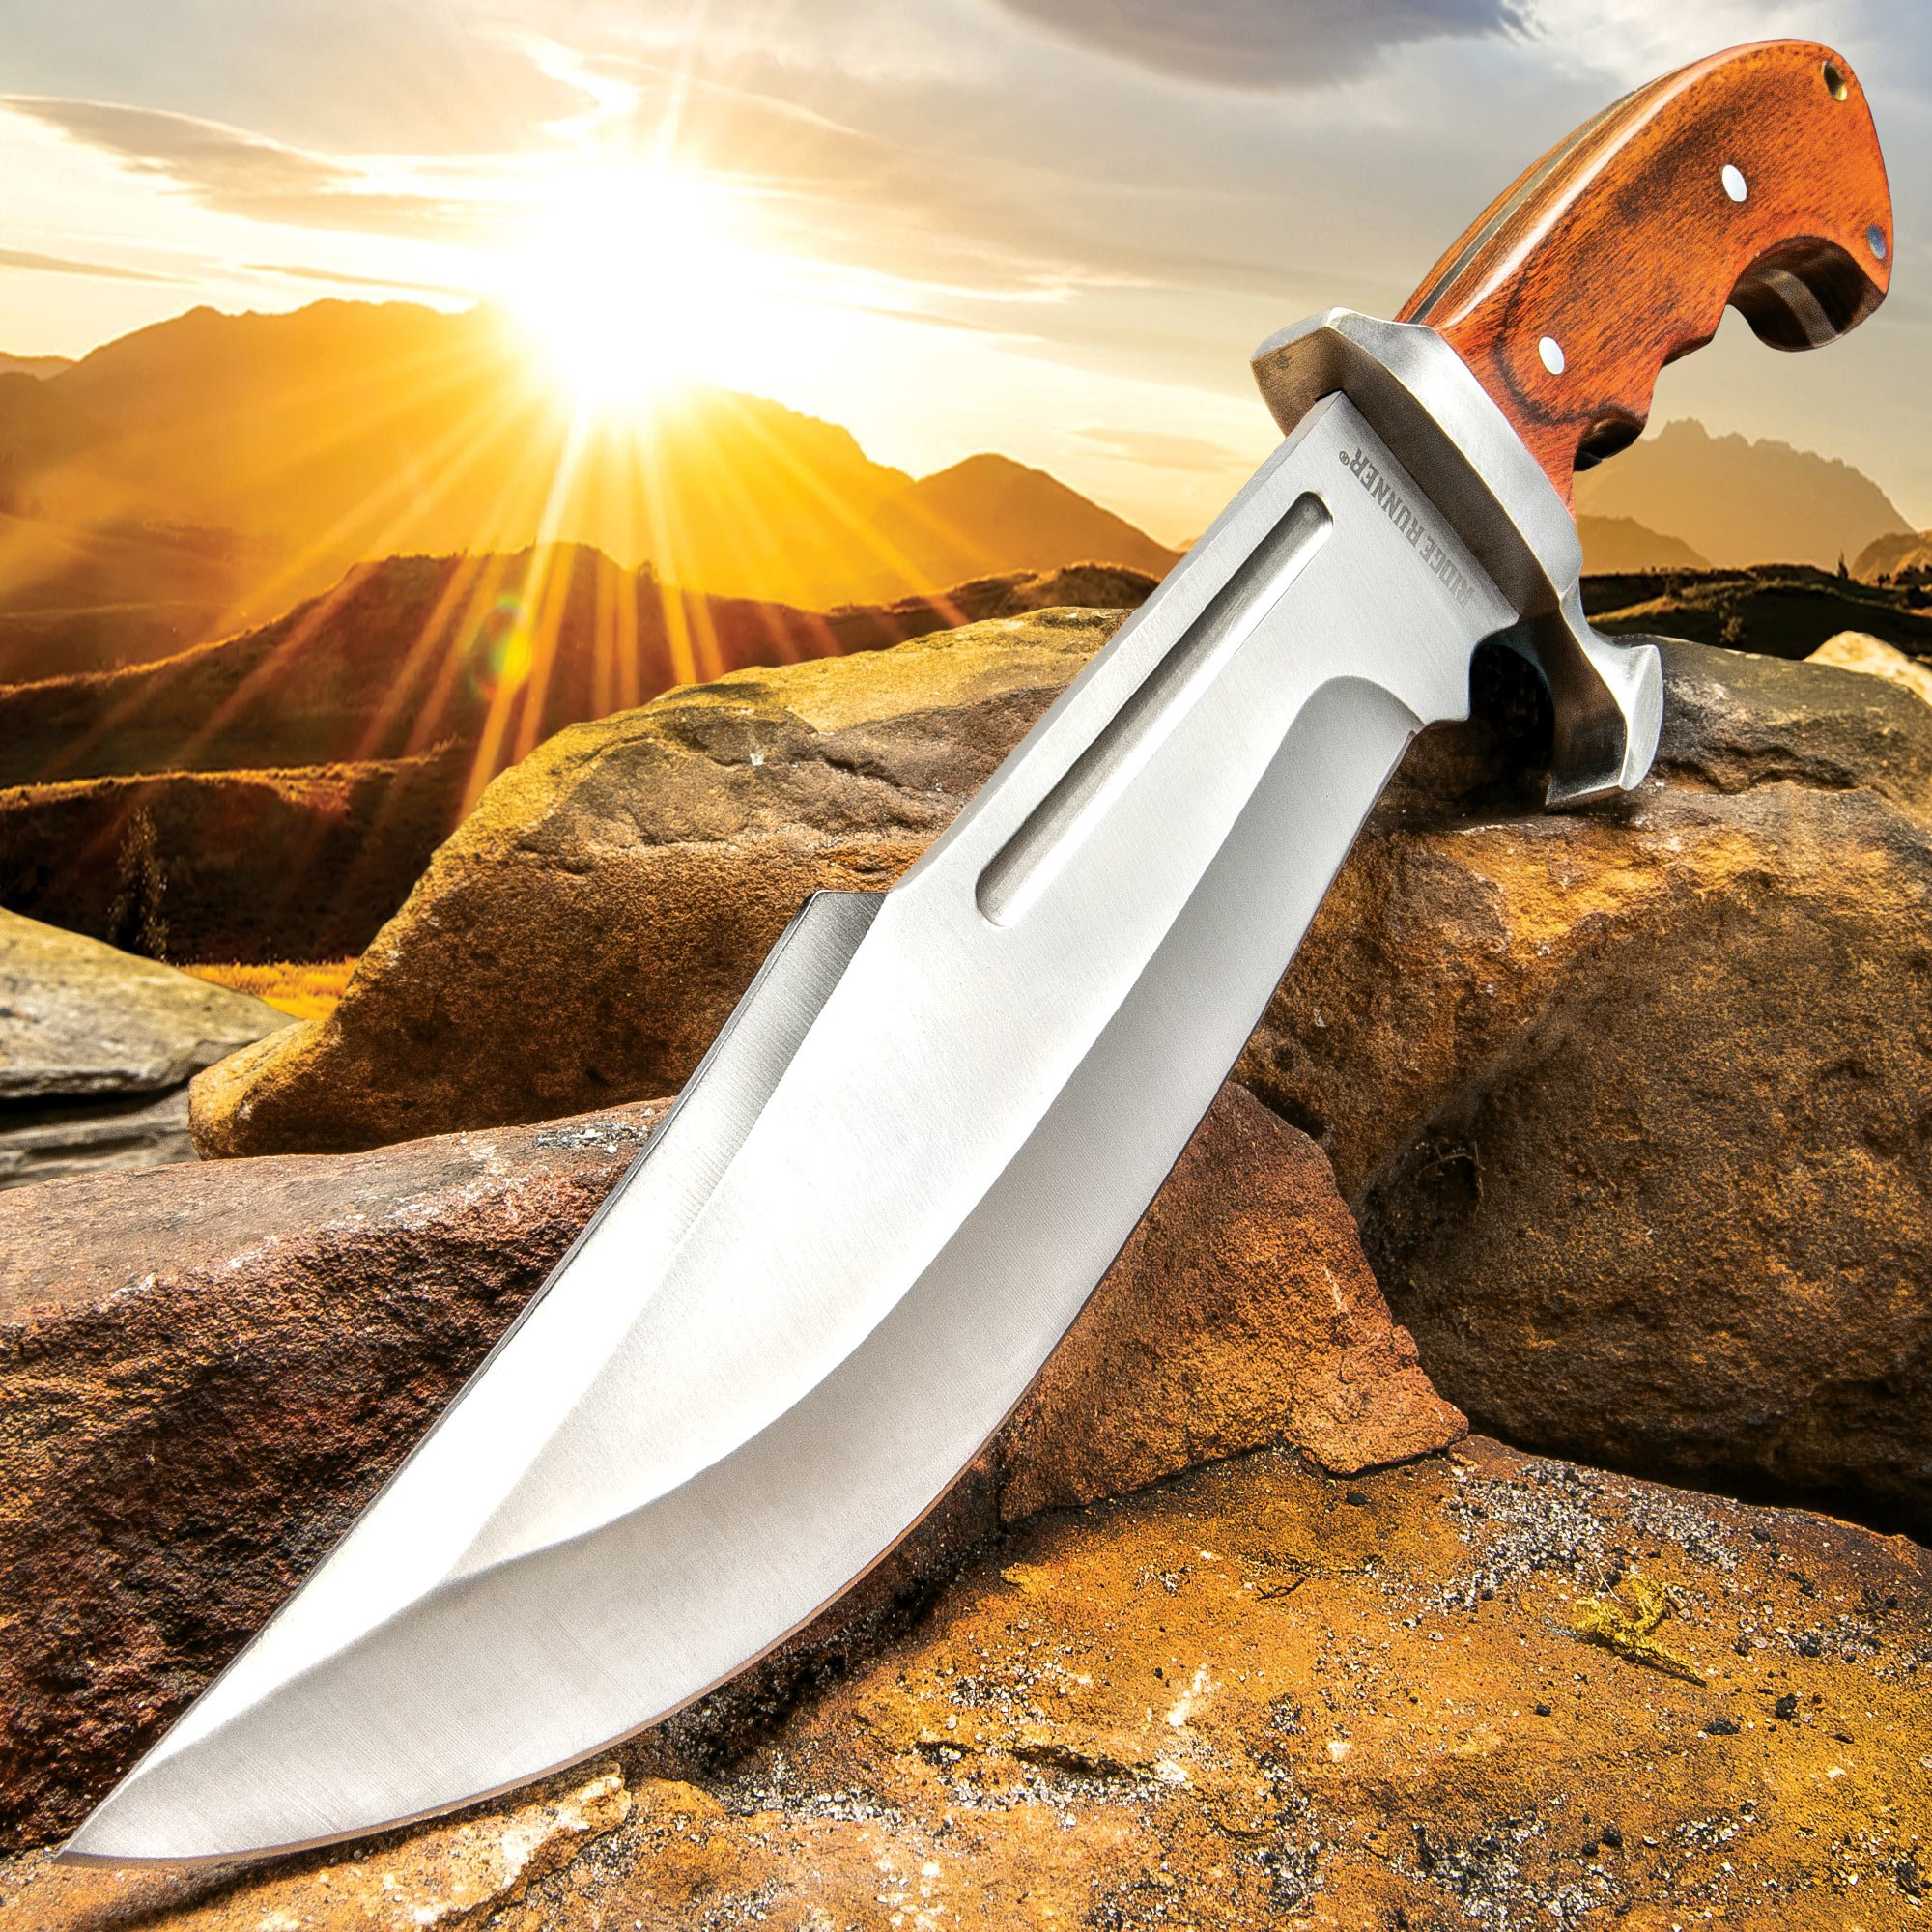 Ridge Runner Woodland Reverie Bowie/Fixed Blade Knife - Stainless Steel, Full Tang - Genuine Zebrawood - Nylon Sheath - Collecting, Field Use, Display and More - 14 1/2''